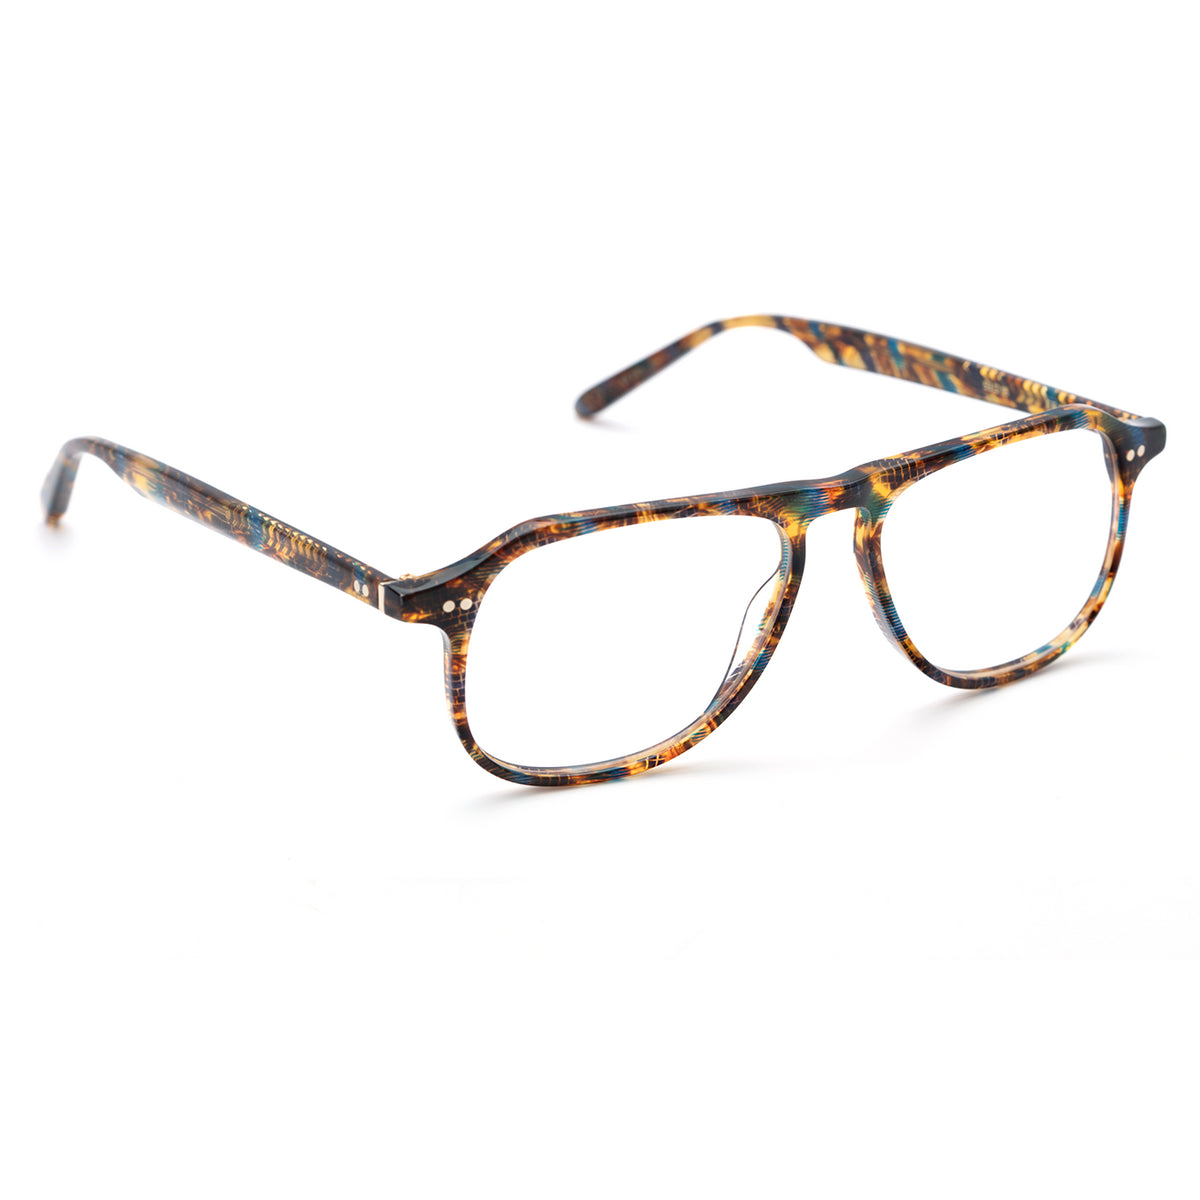 ERATO | Heron handcrafted acetate frames